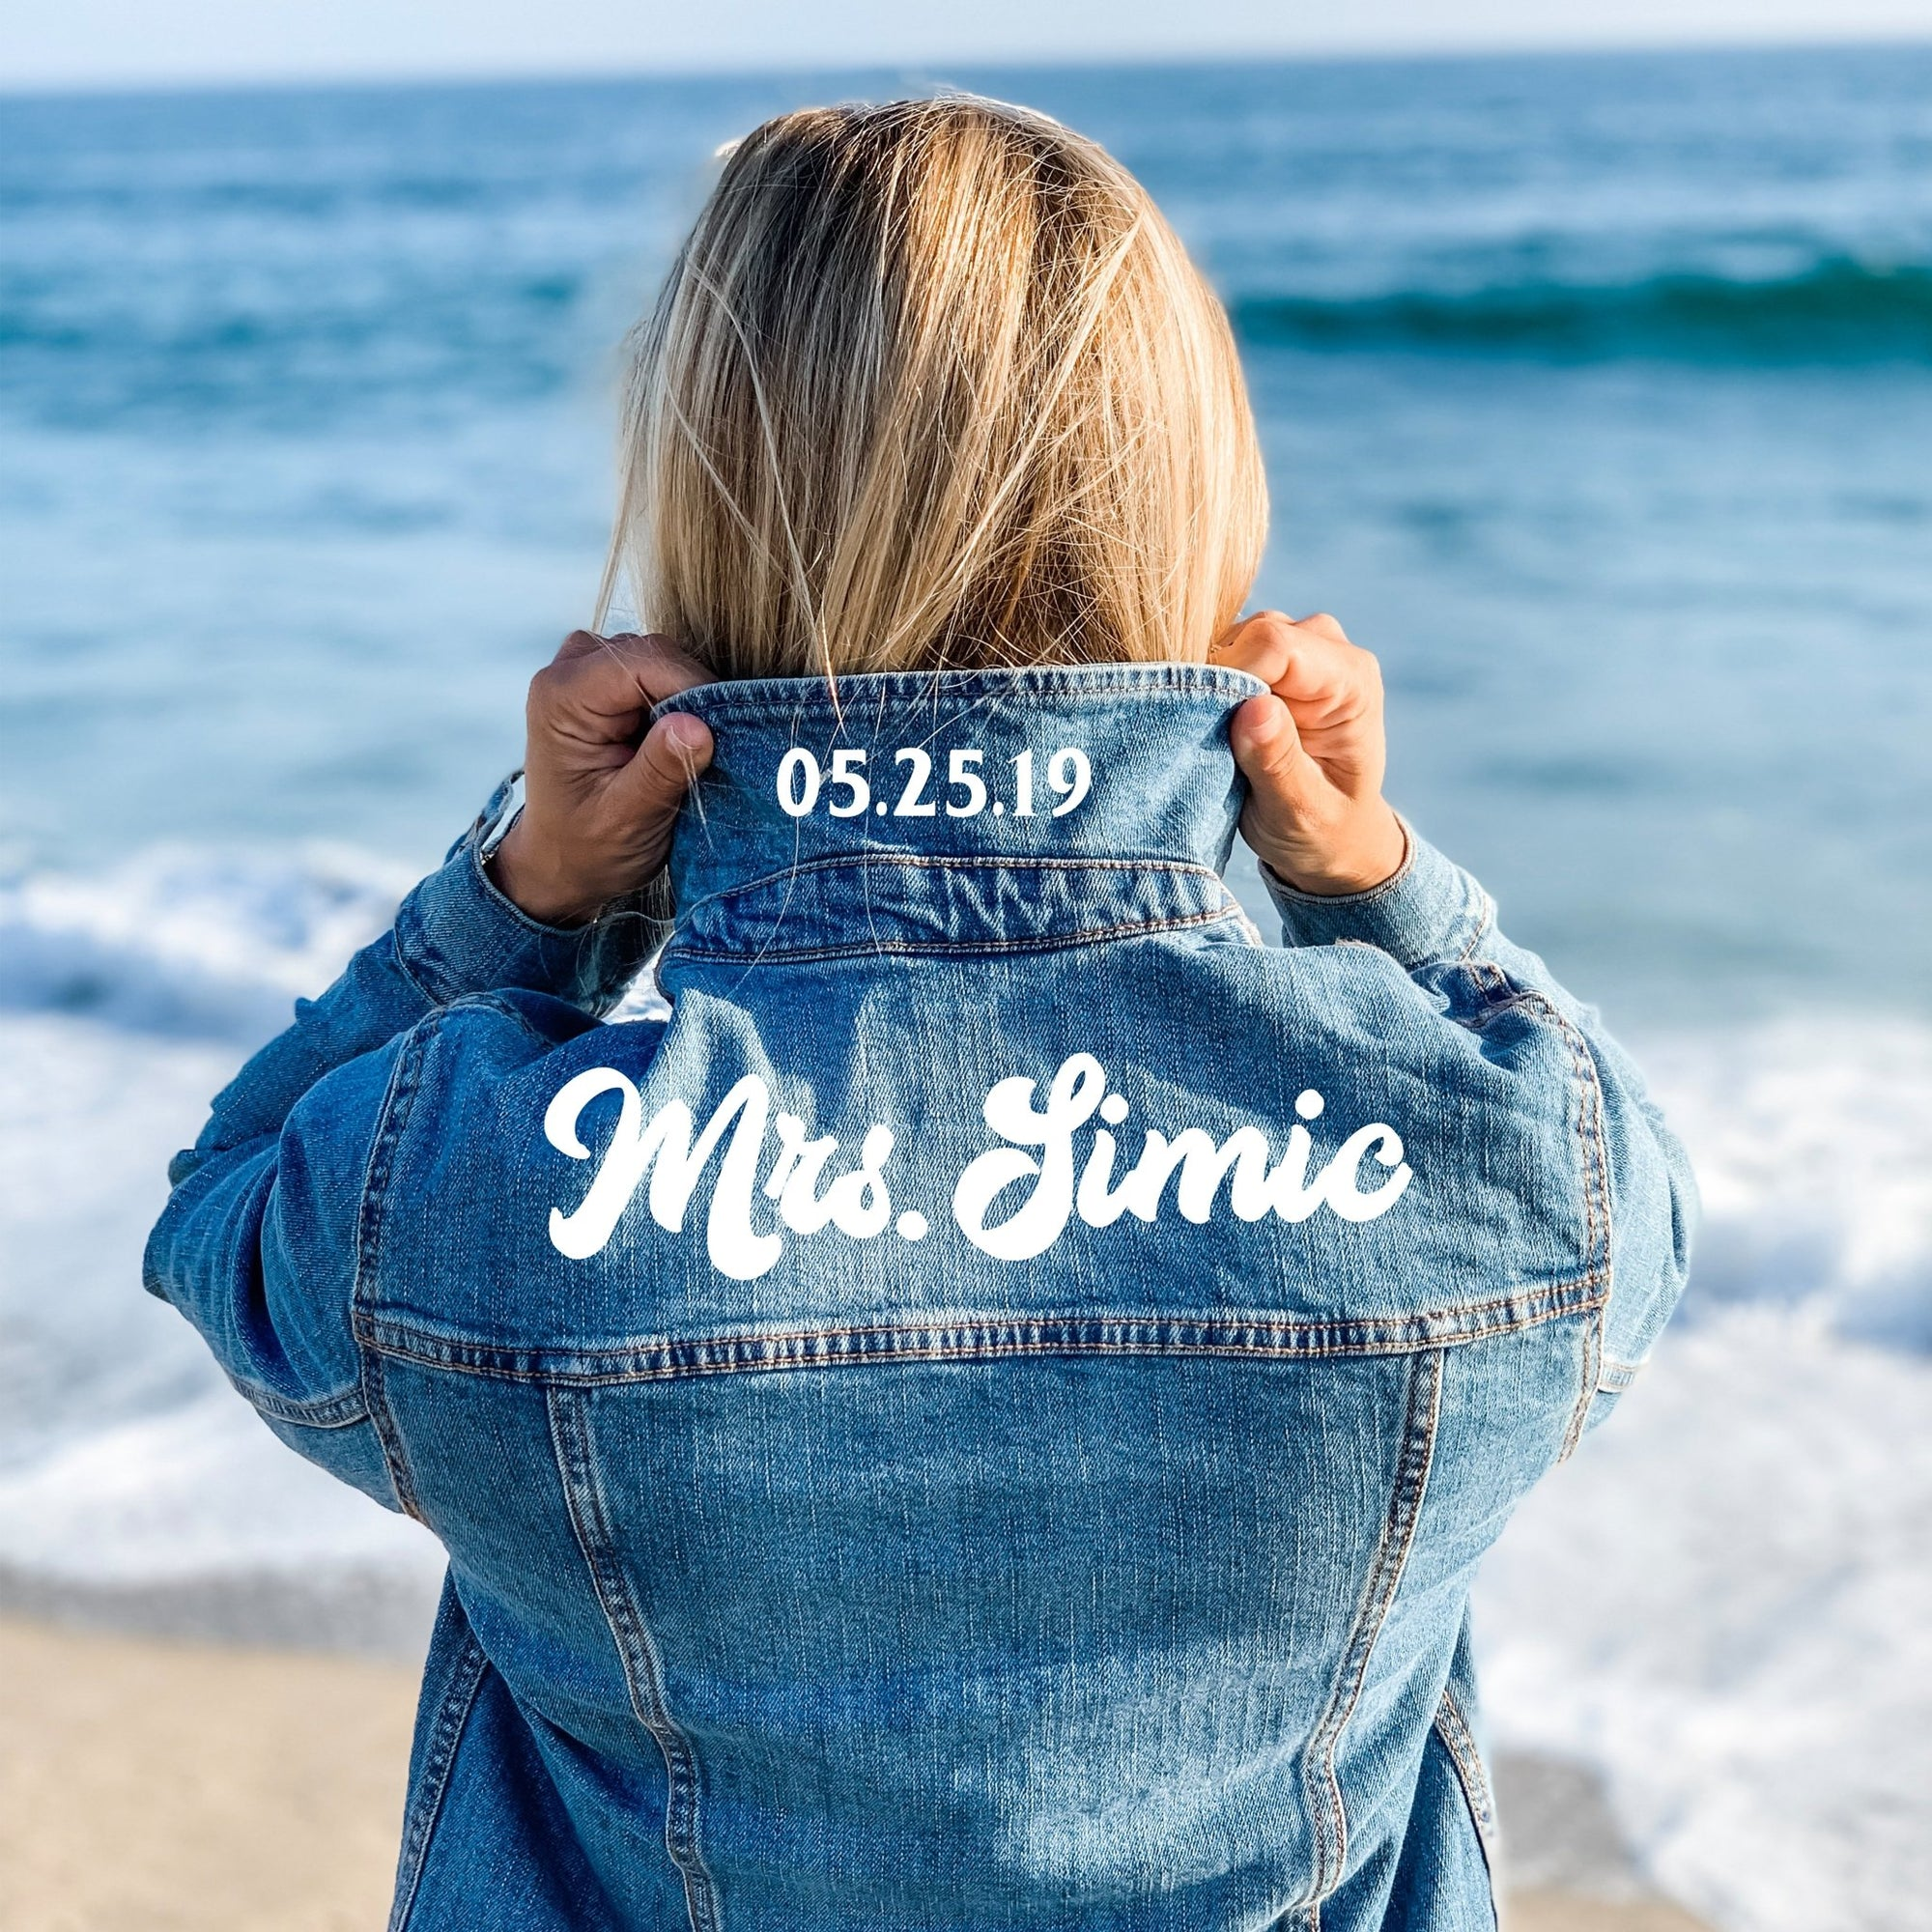 Last Name & Date Denim Jacket (top of shoulders)